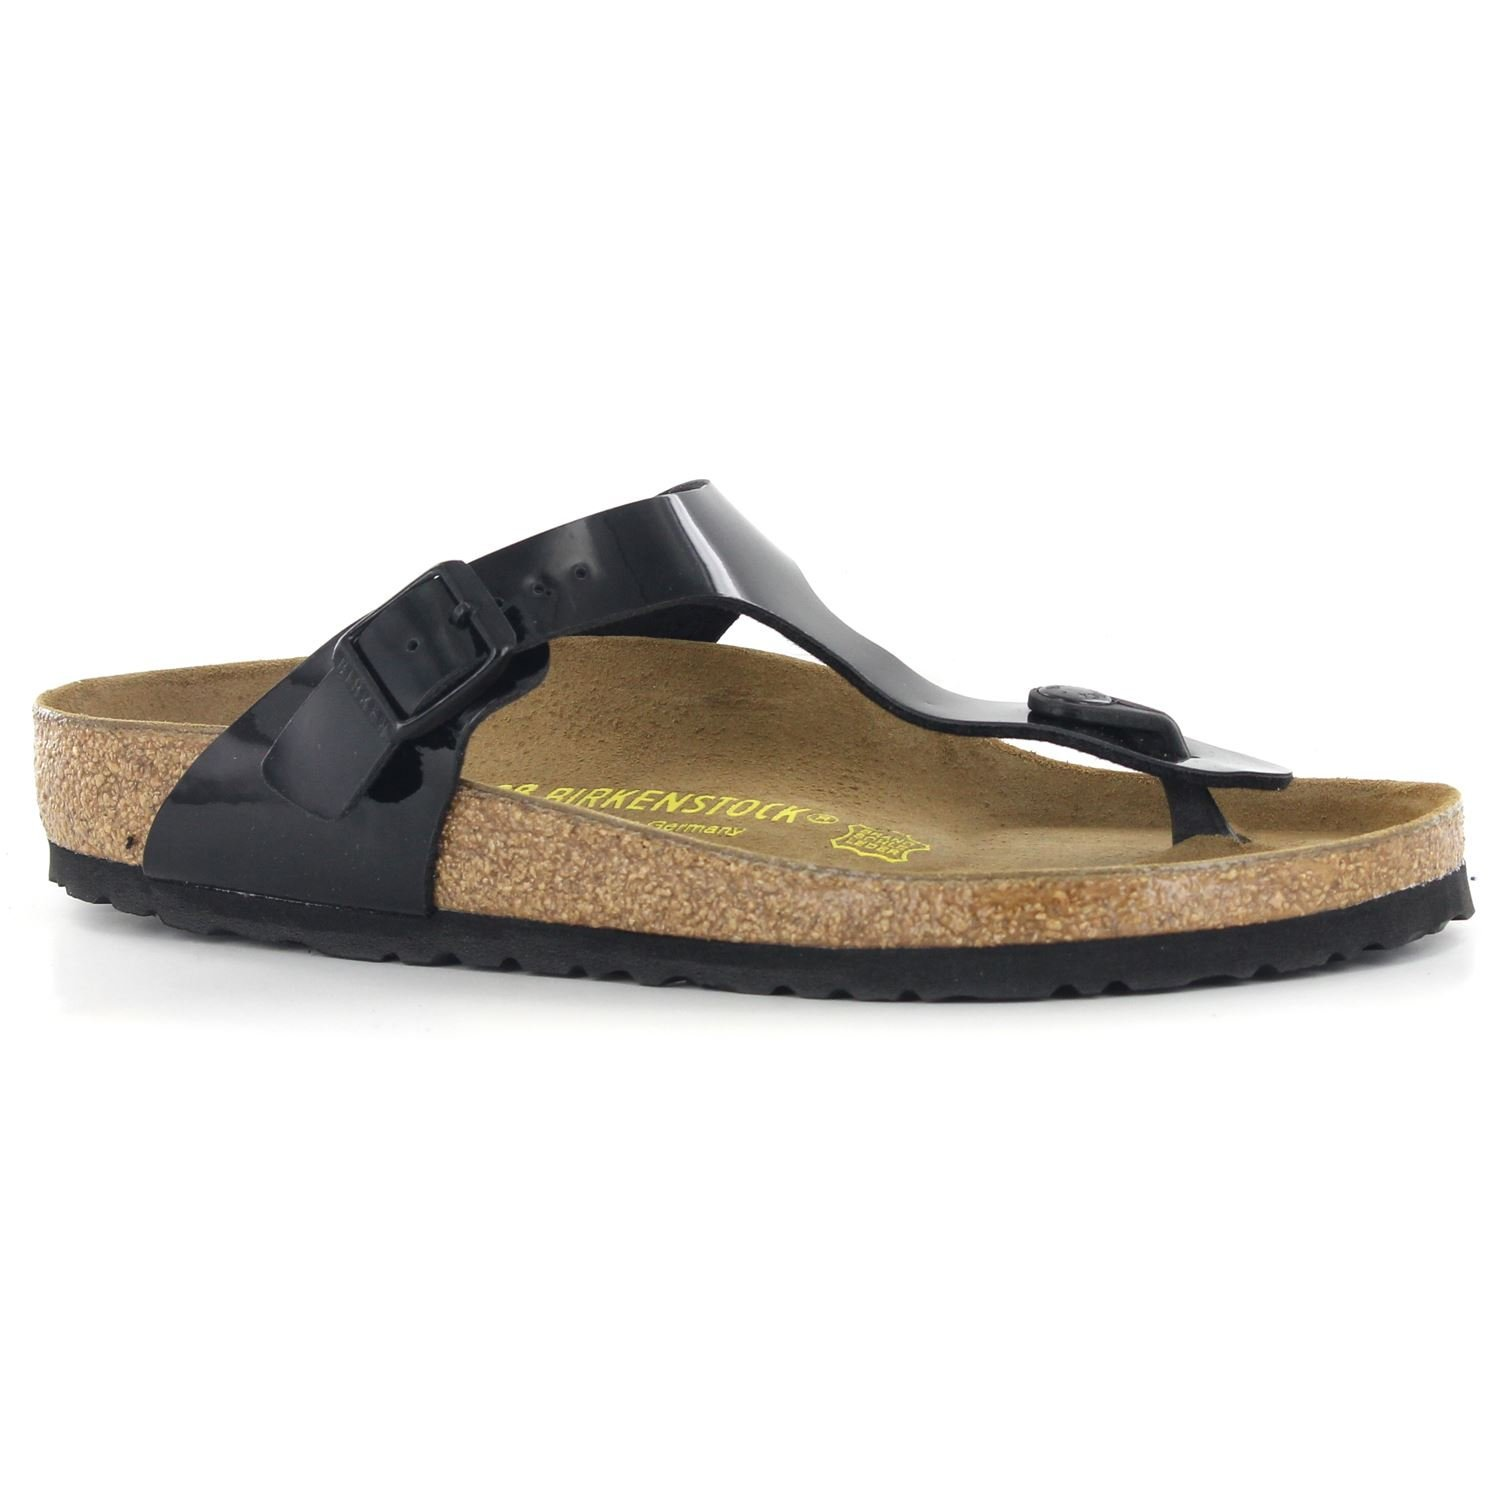 f8e81dcc2ca Birkenstock Women s Gizeh Thong Sandal  Birkenstock  Amazon.ca  Shoes    Handbags